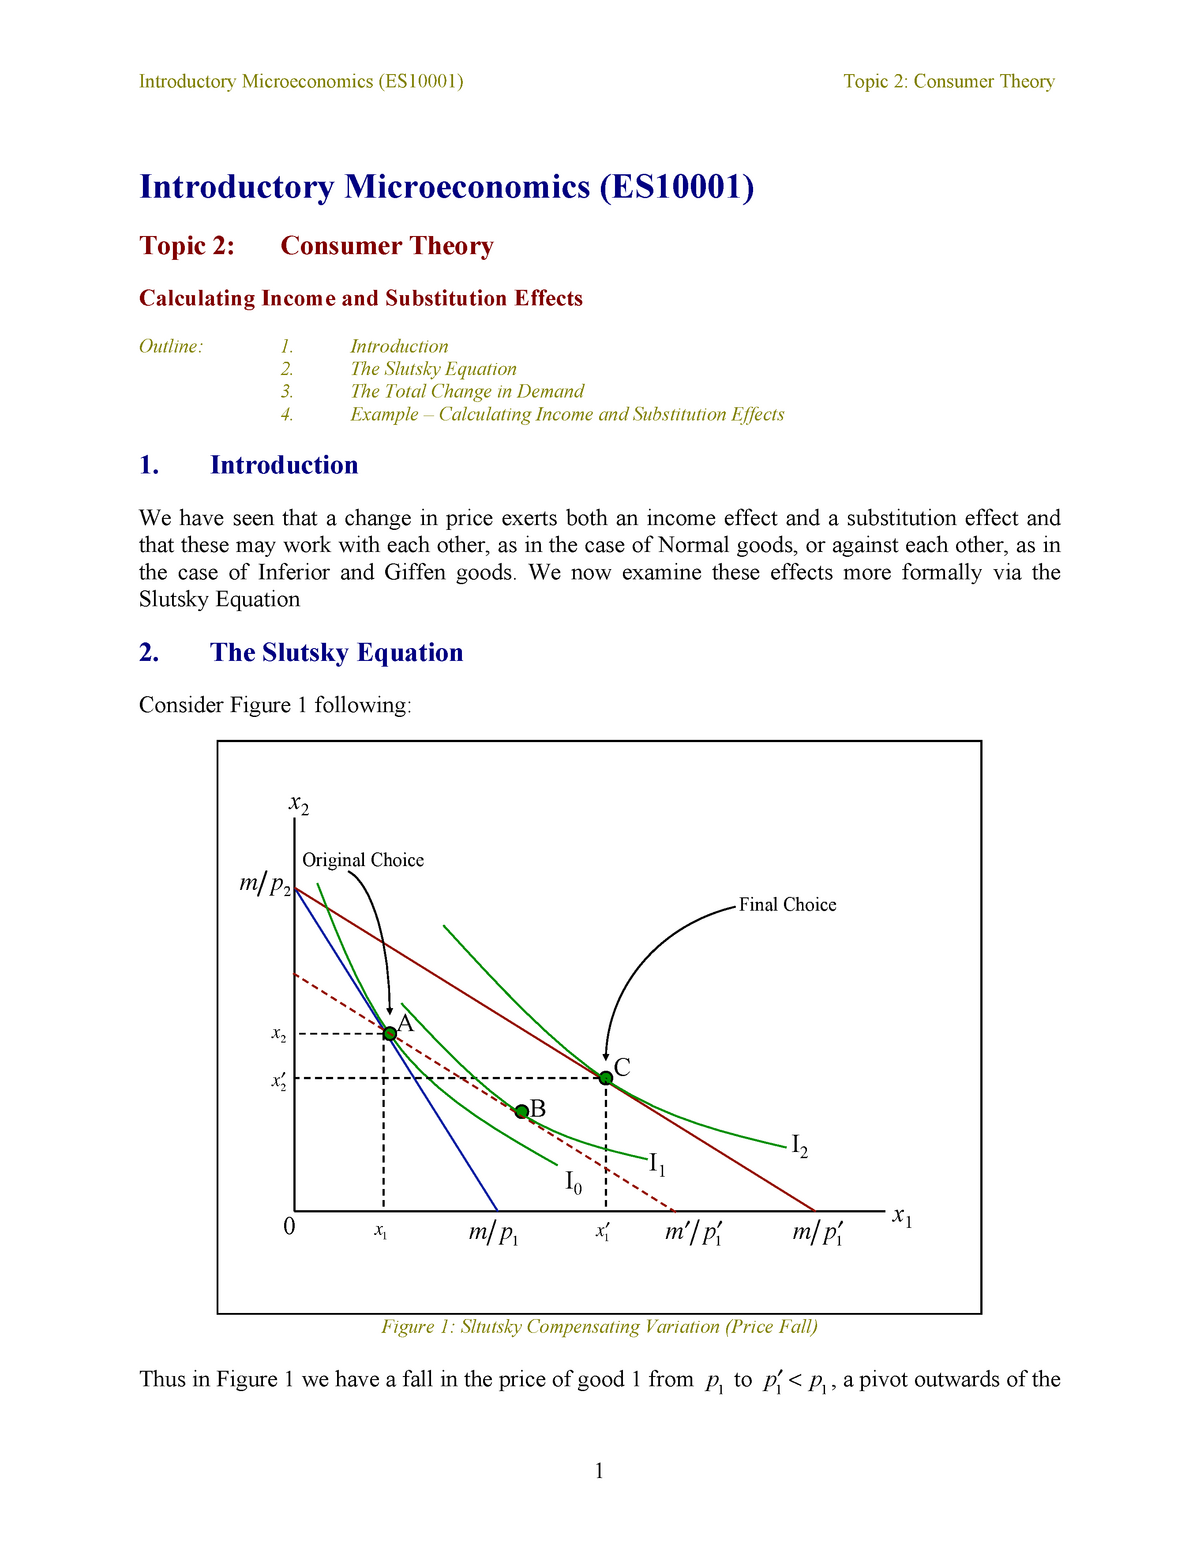 Calculating Income and Substitution Effects - ES10010 - Bath